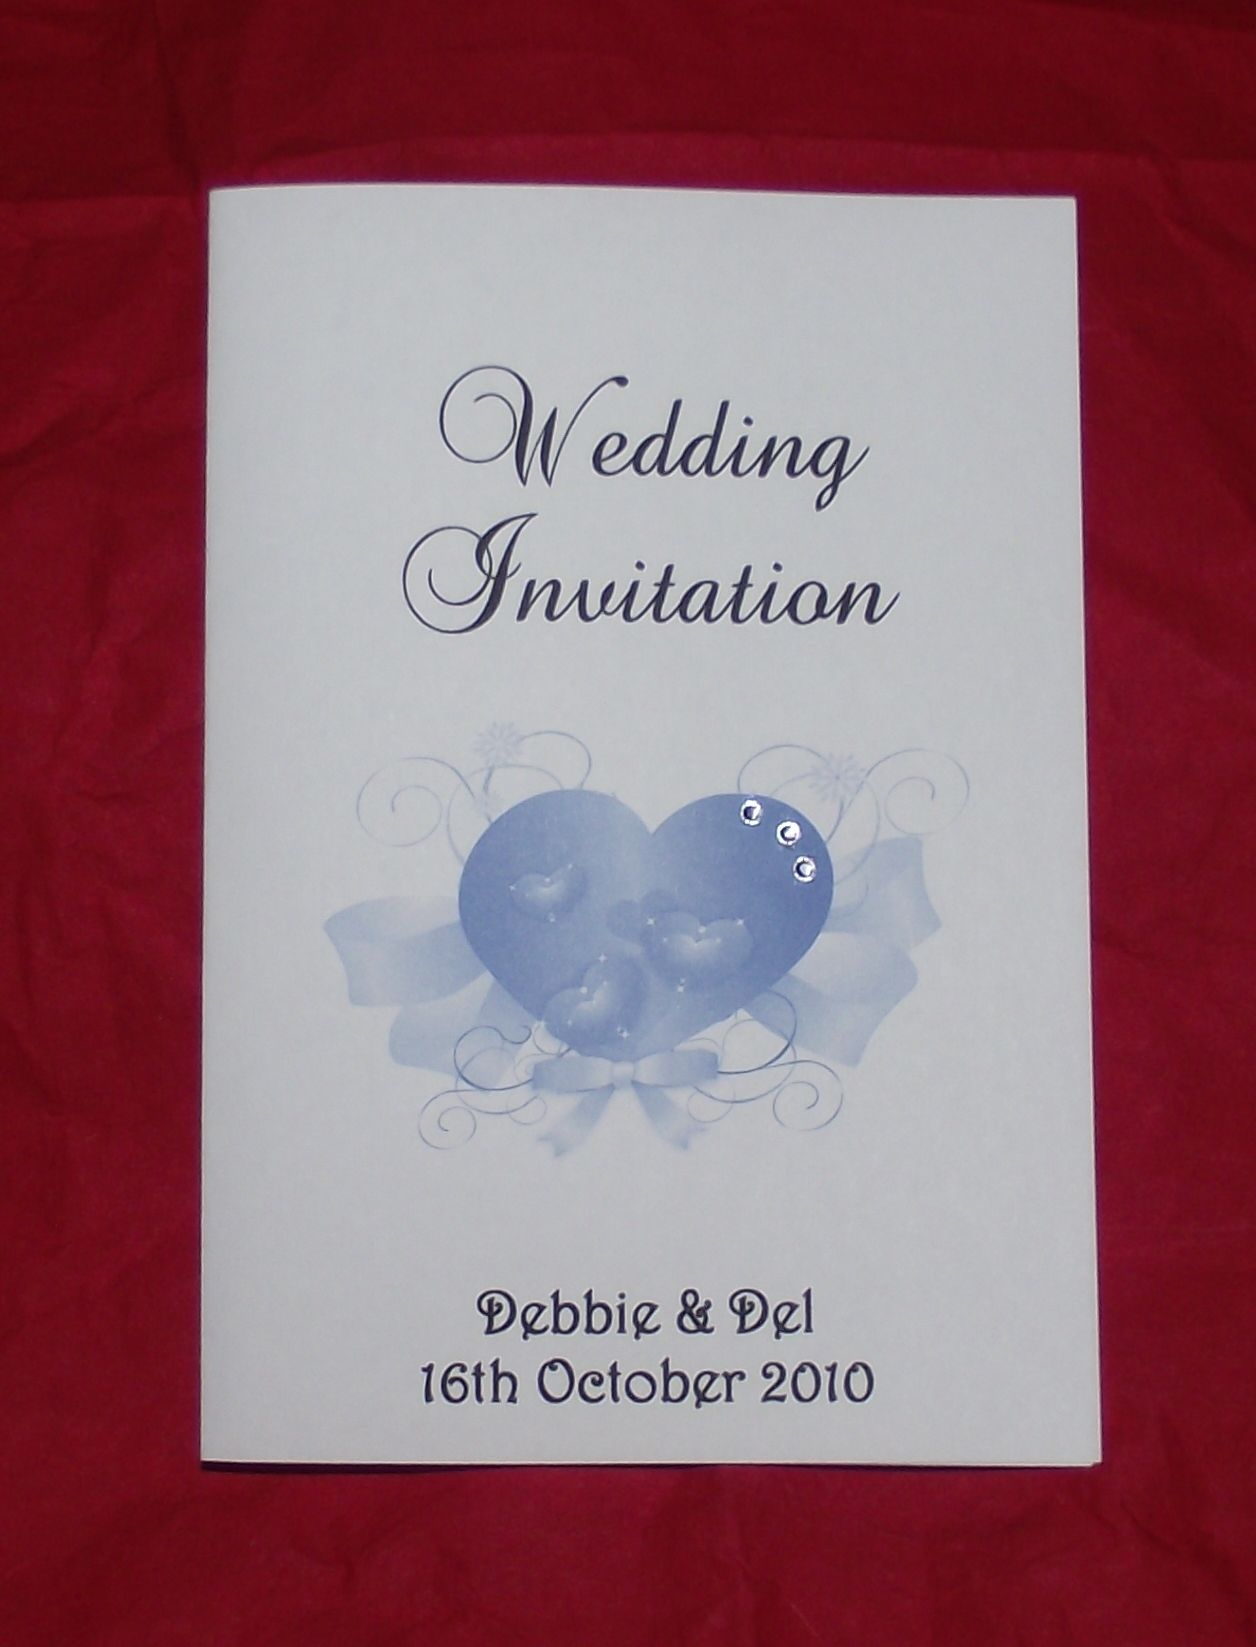 Wedding invitation Stationery Personalised Elegant Heart diamonte ...